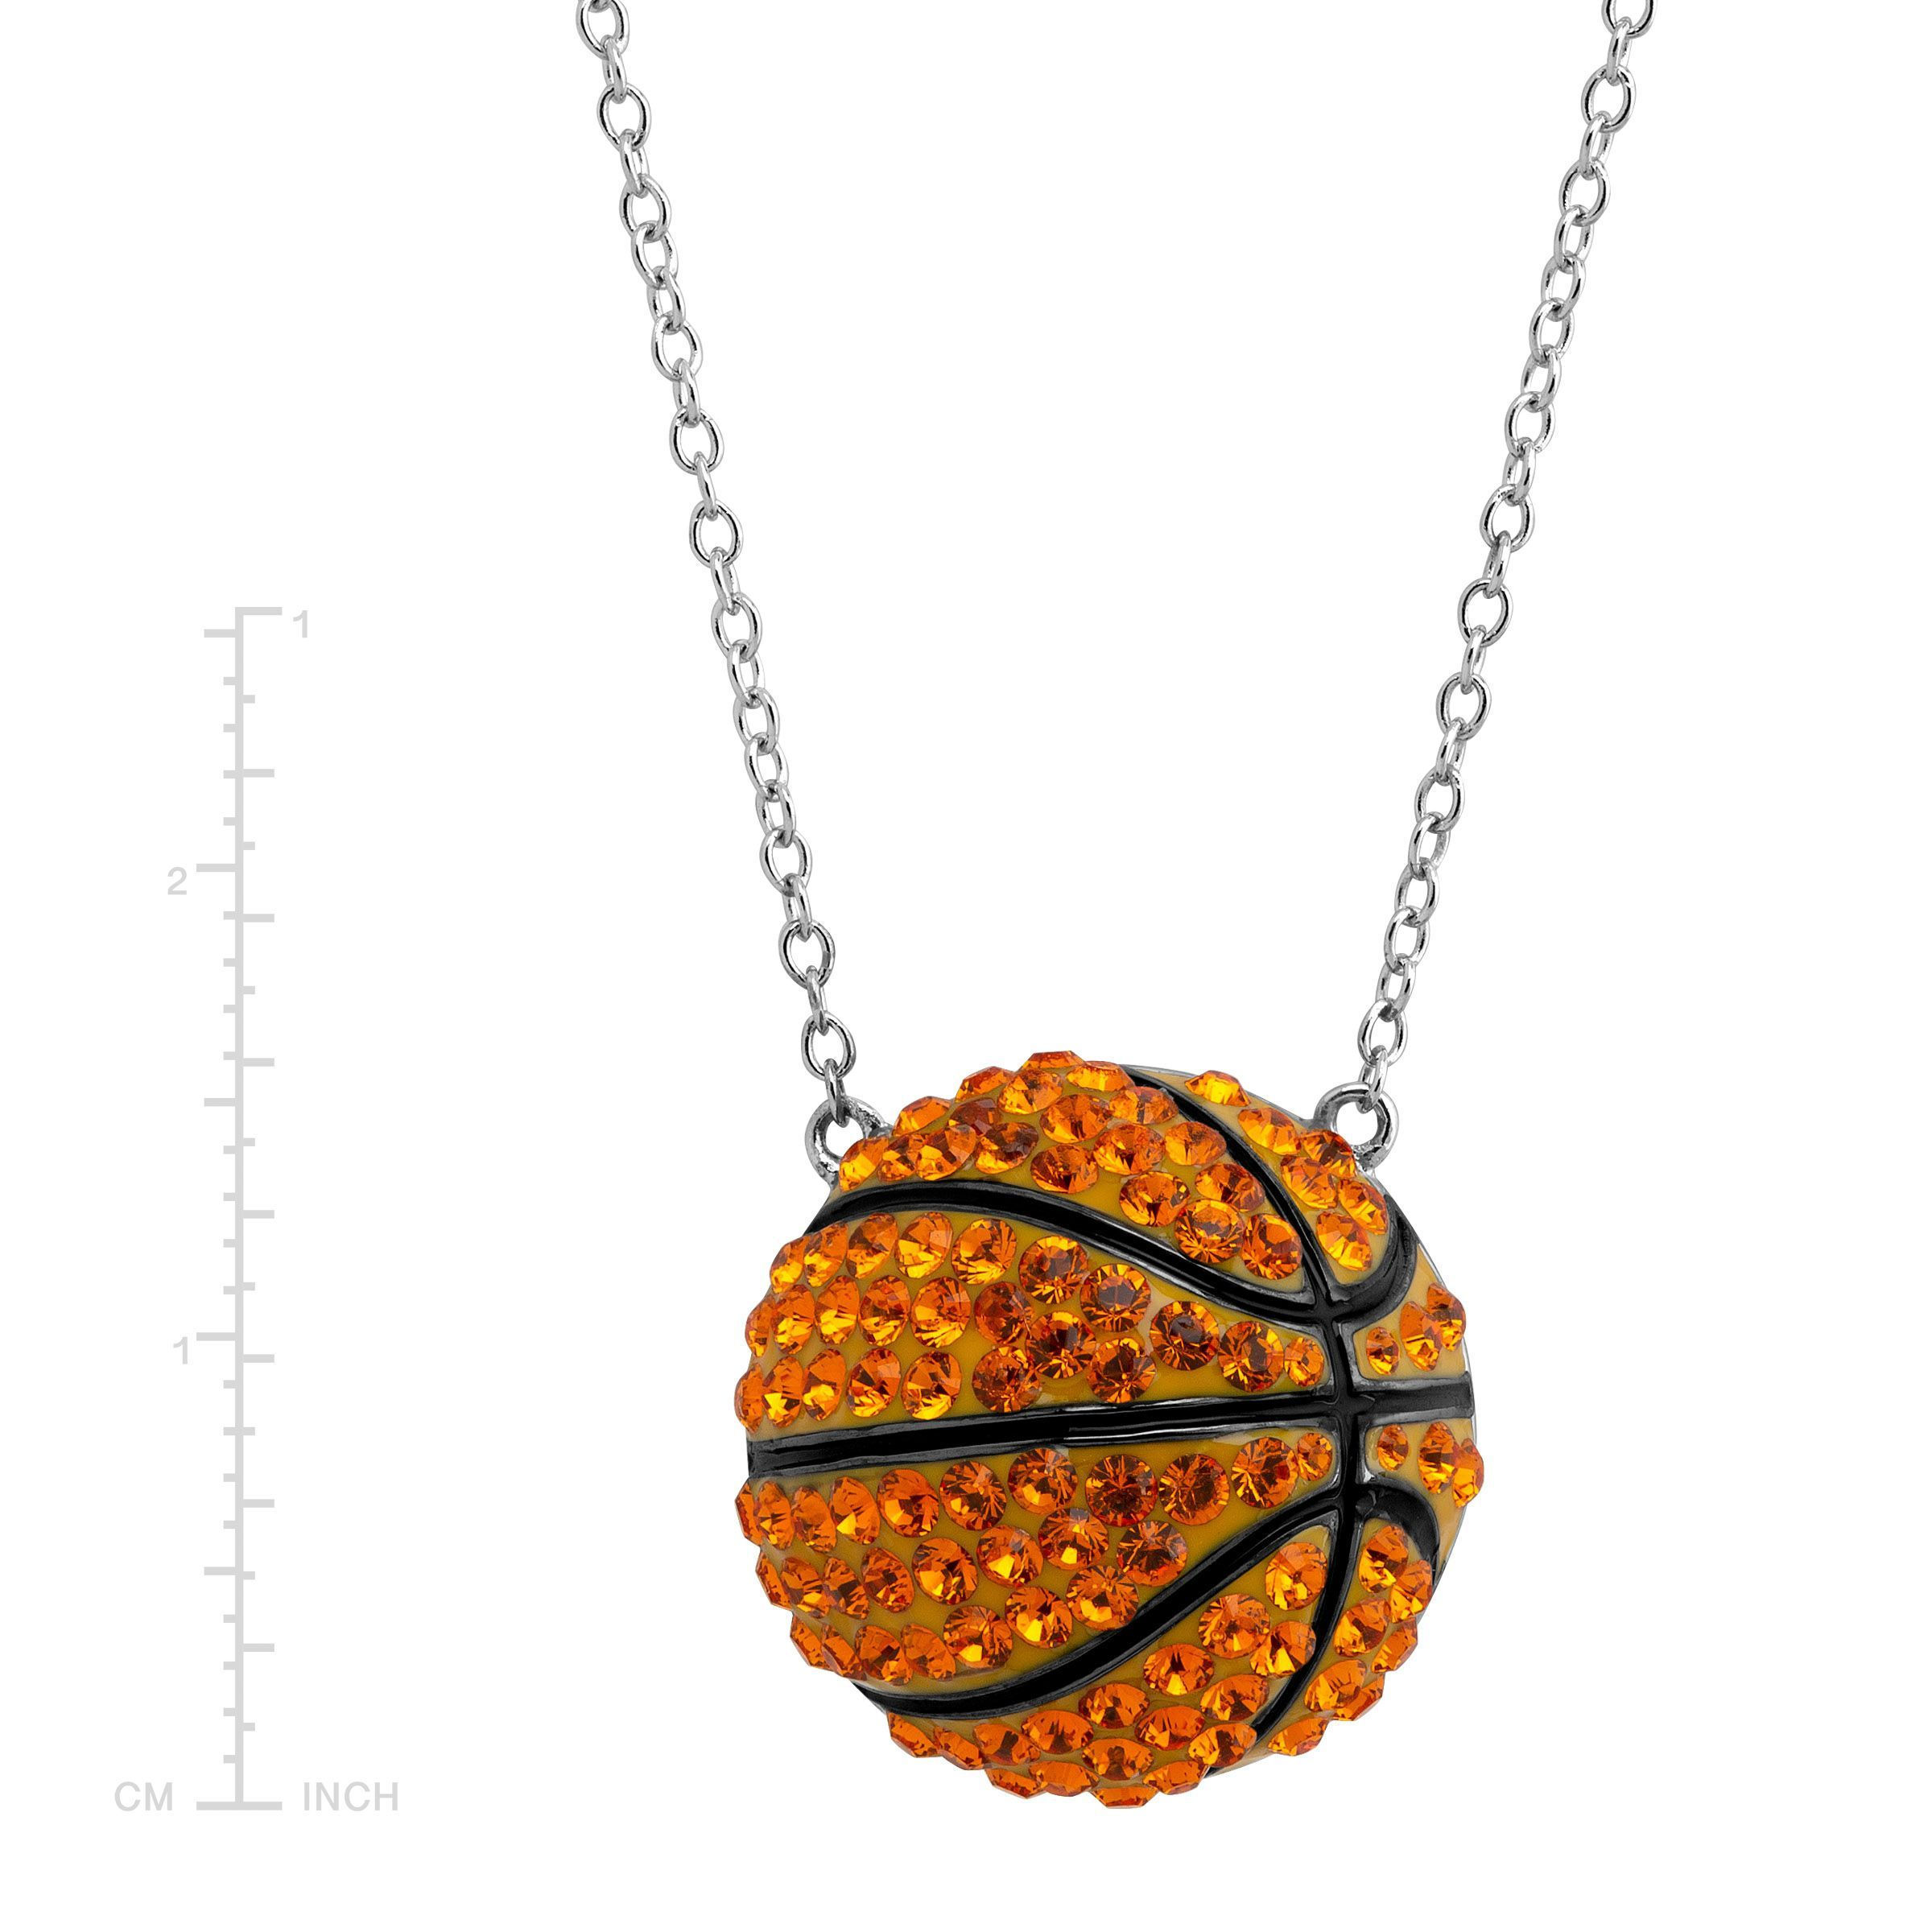 94fbd151ee851 Details about Crystaluxe Basketball Pendant with Swarovski Crystals in  Sterling Silver